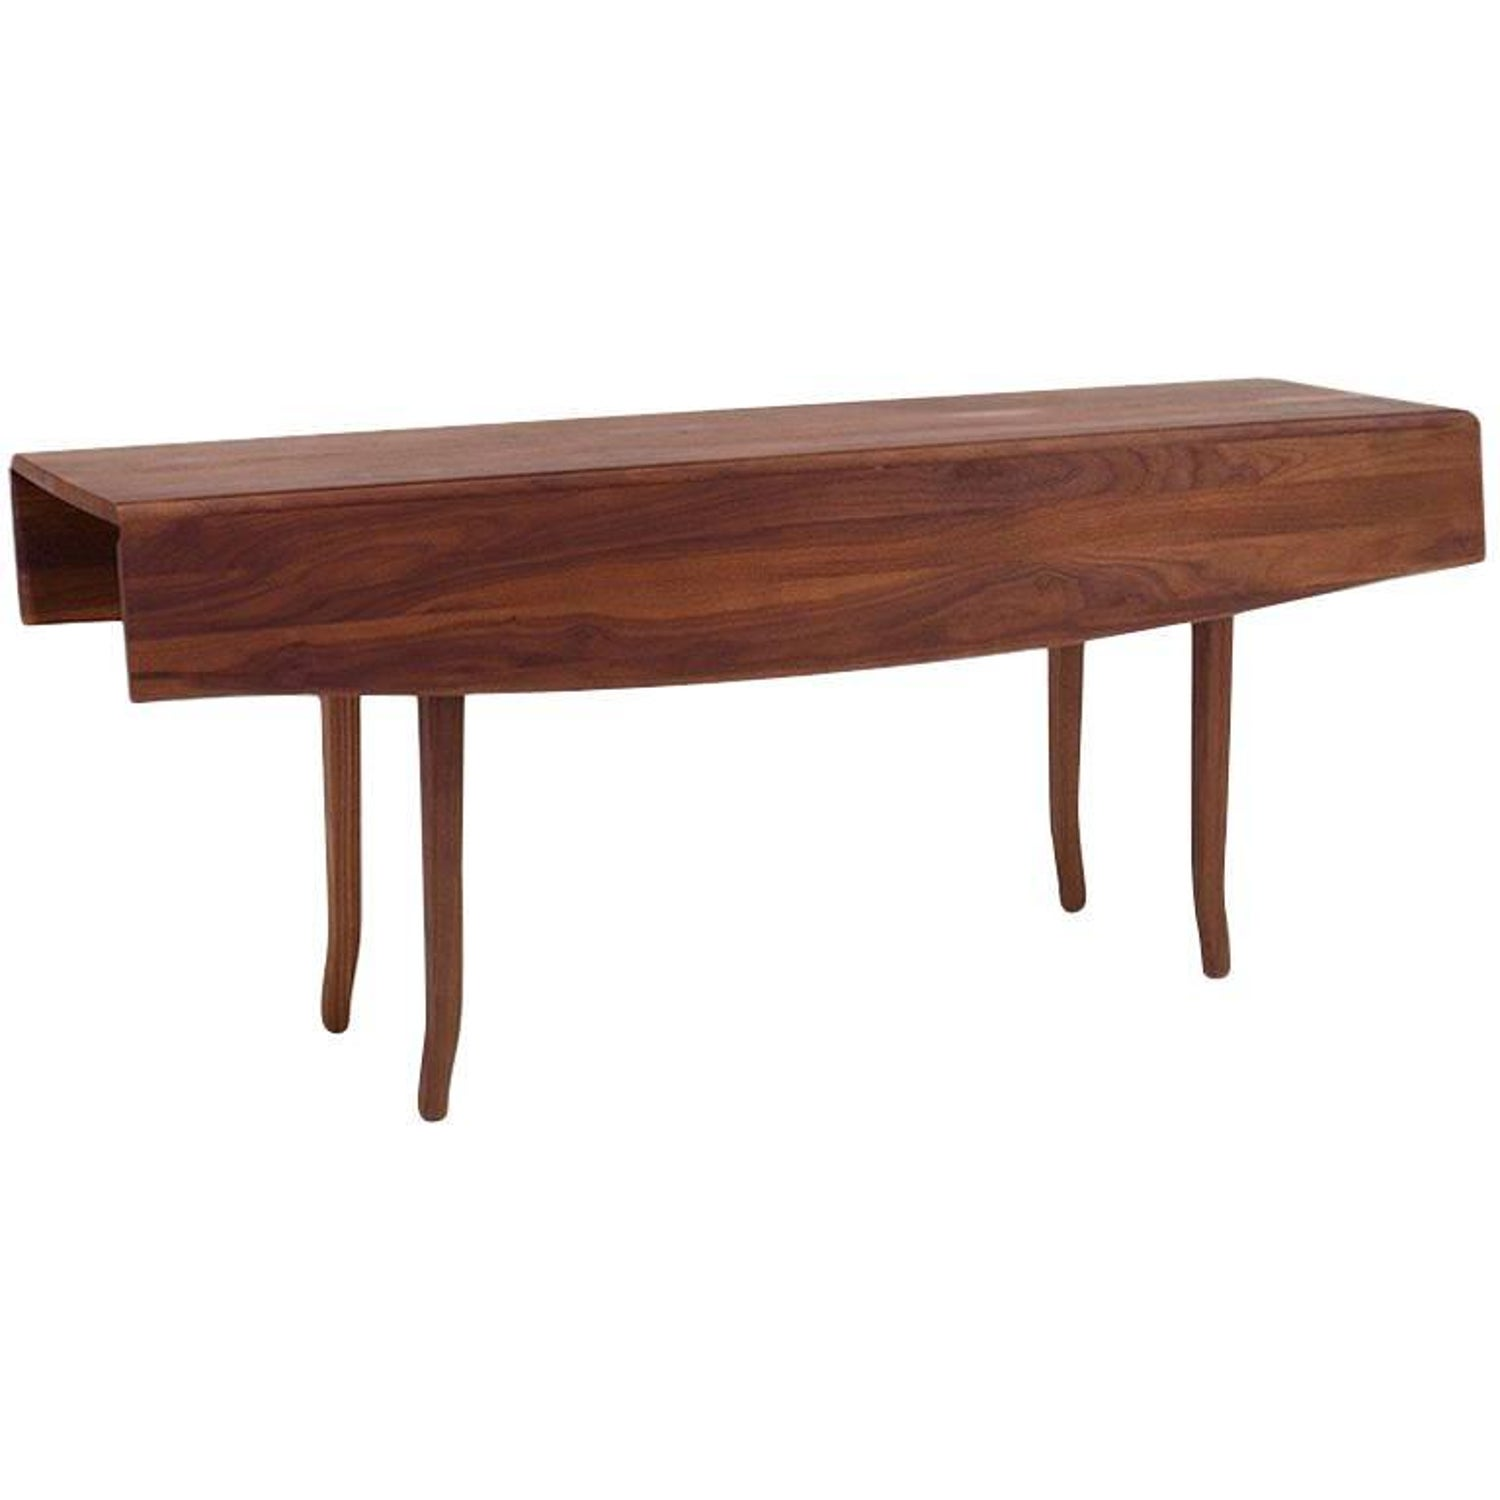 MidCentury Modern Dropleaf And Pembroke Tables For Sale At - Mid century modern folding dining table